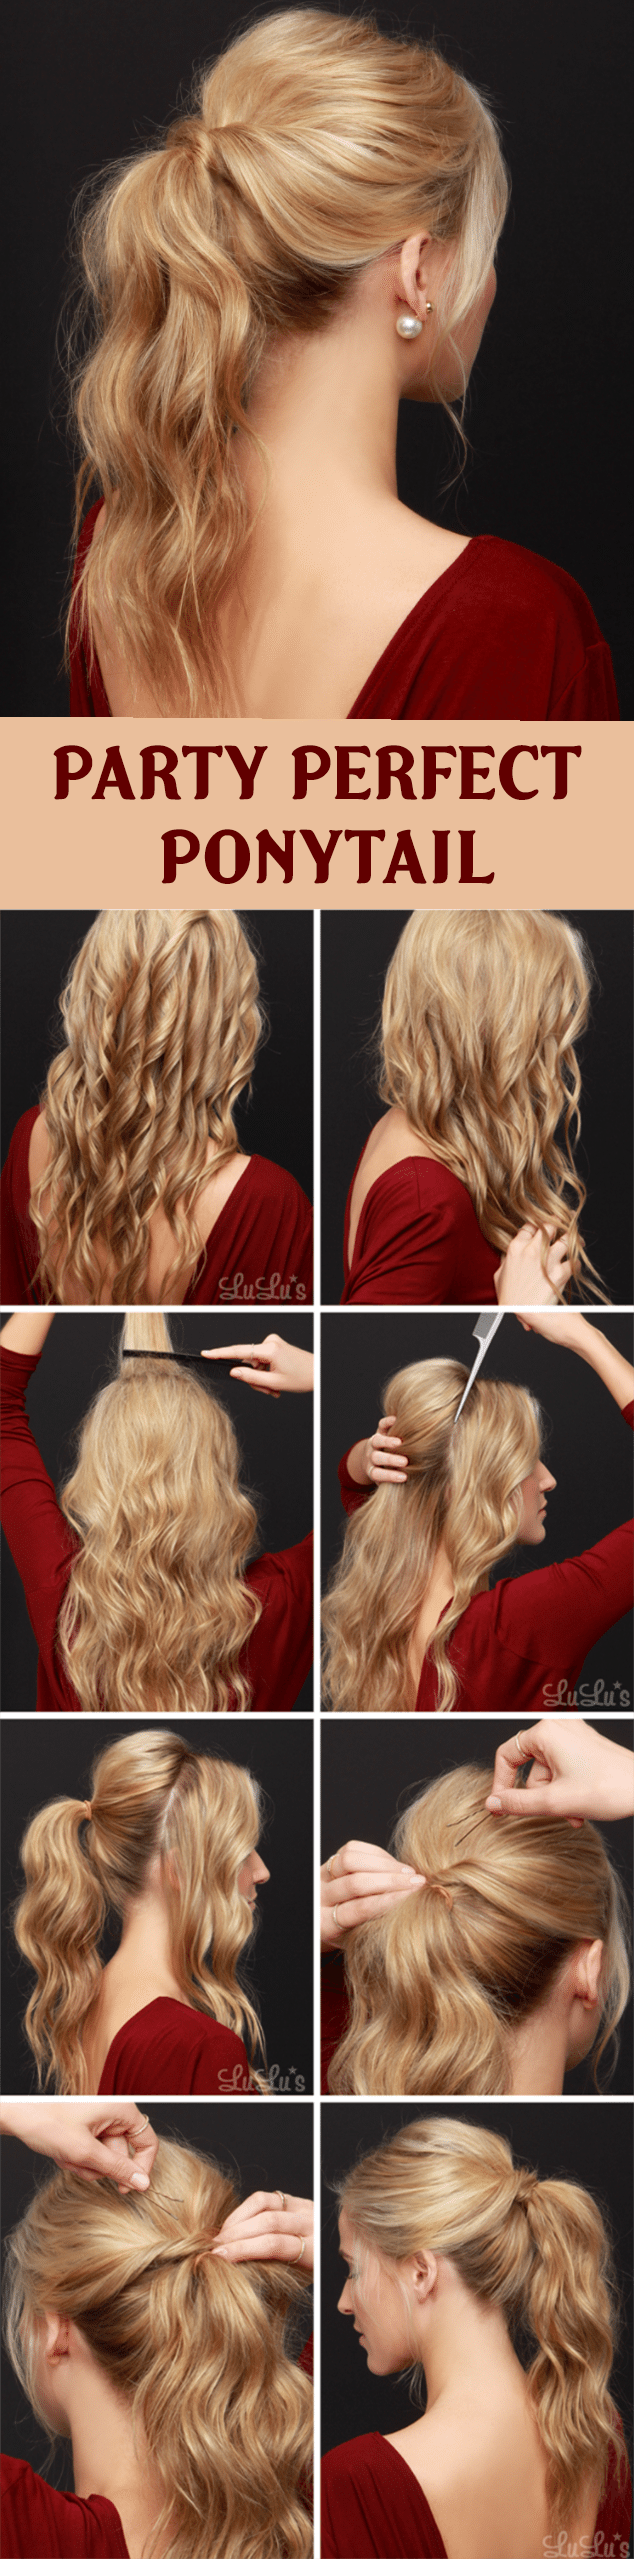 PARTY PERFECT PONYTAIL HAIRSTYLE